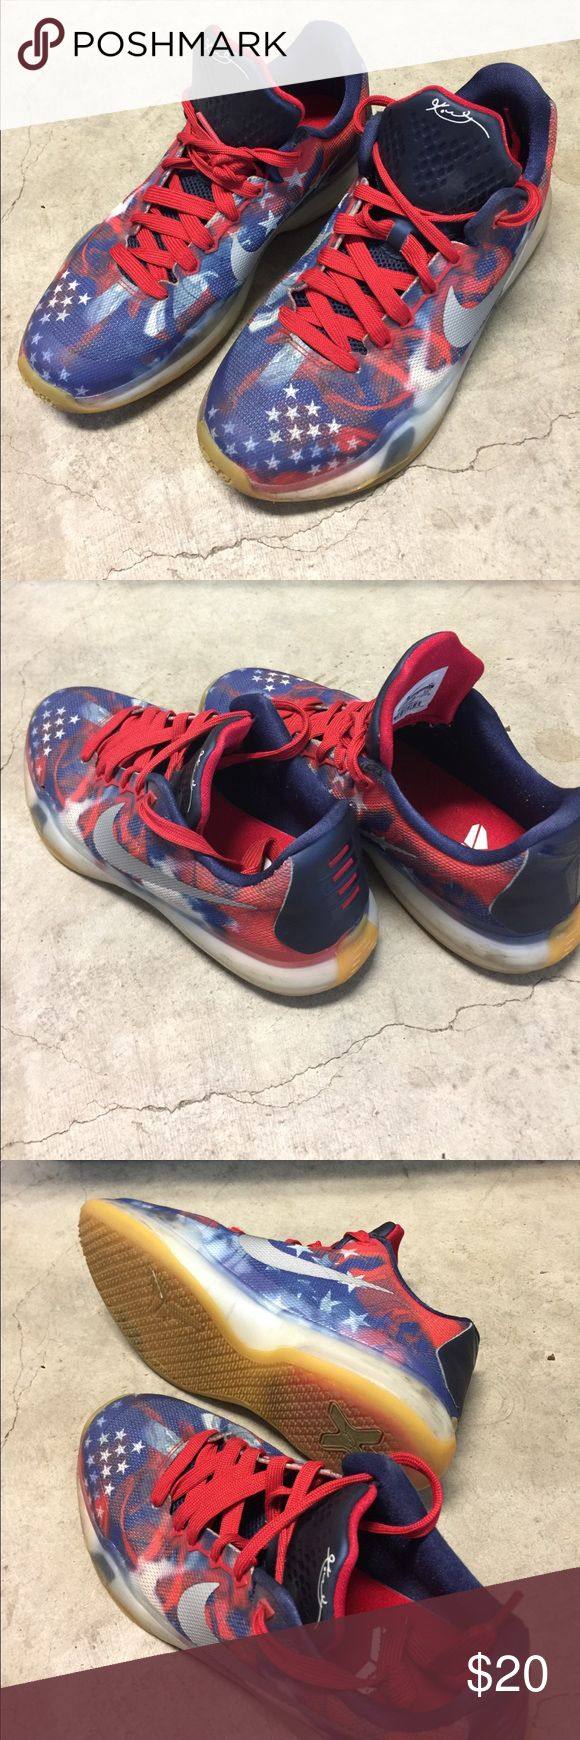 Nike Kobe Bryant shoes, 4th of July USED. Nike Kobe Bryant basketball shoes. 4th of July edition. Nike Shoes Sneakers